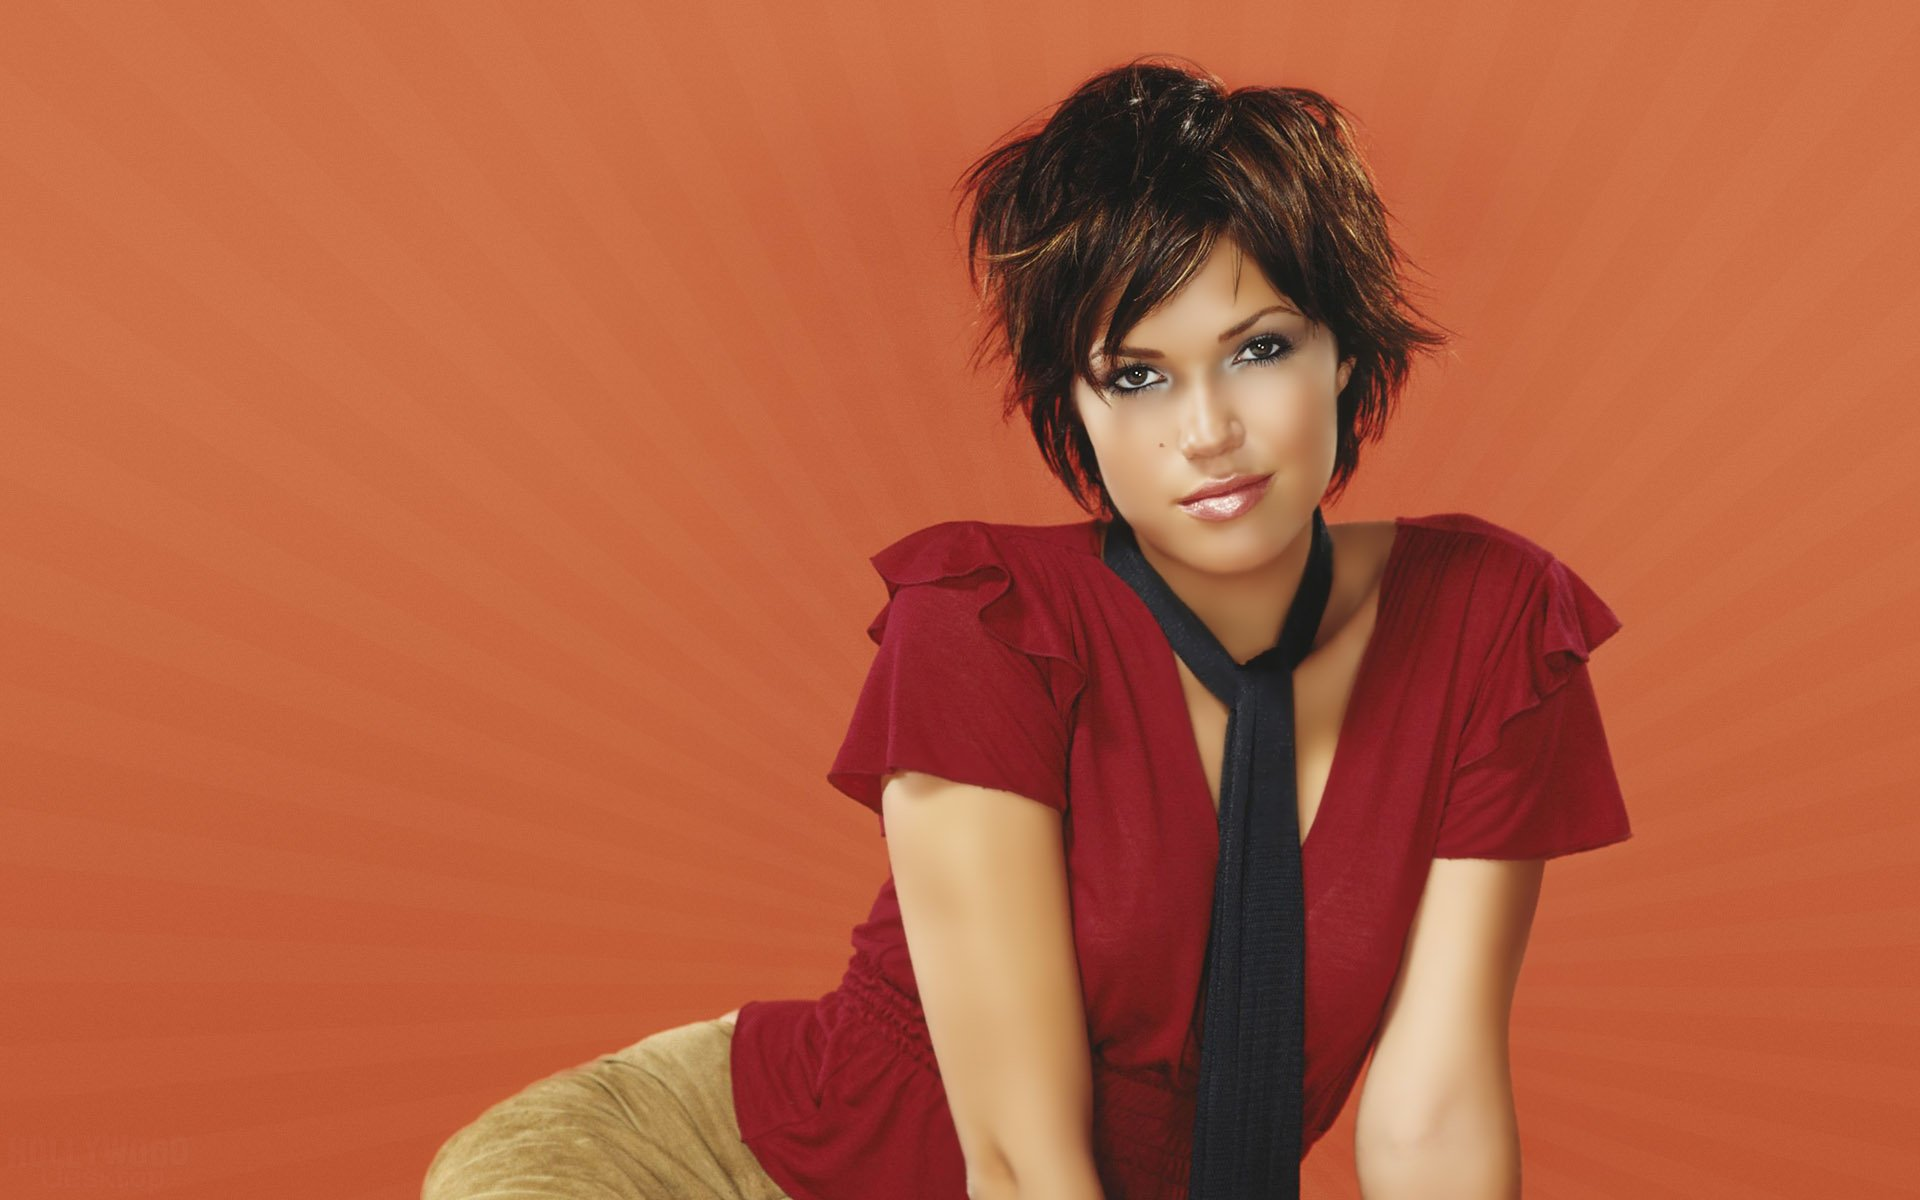 mandy moore full hd wallpaper and background image | 1920x1200 | id